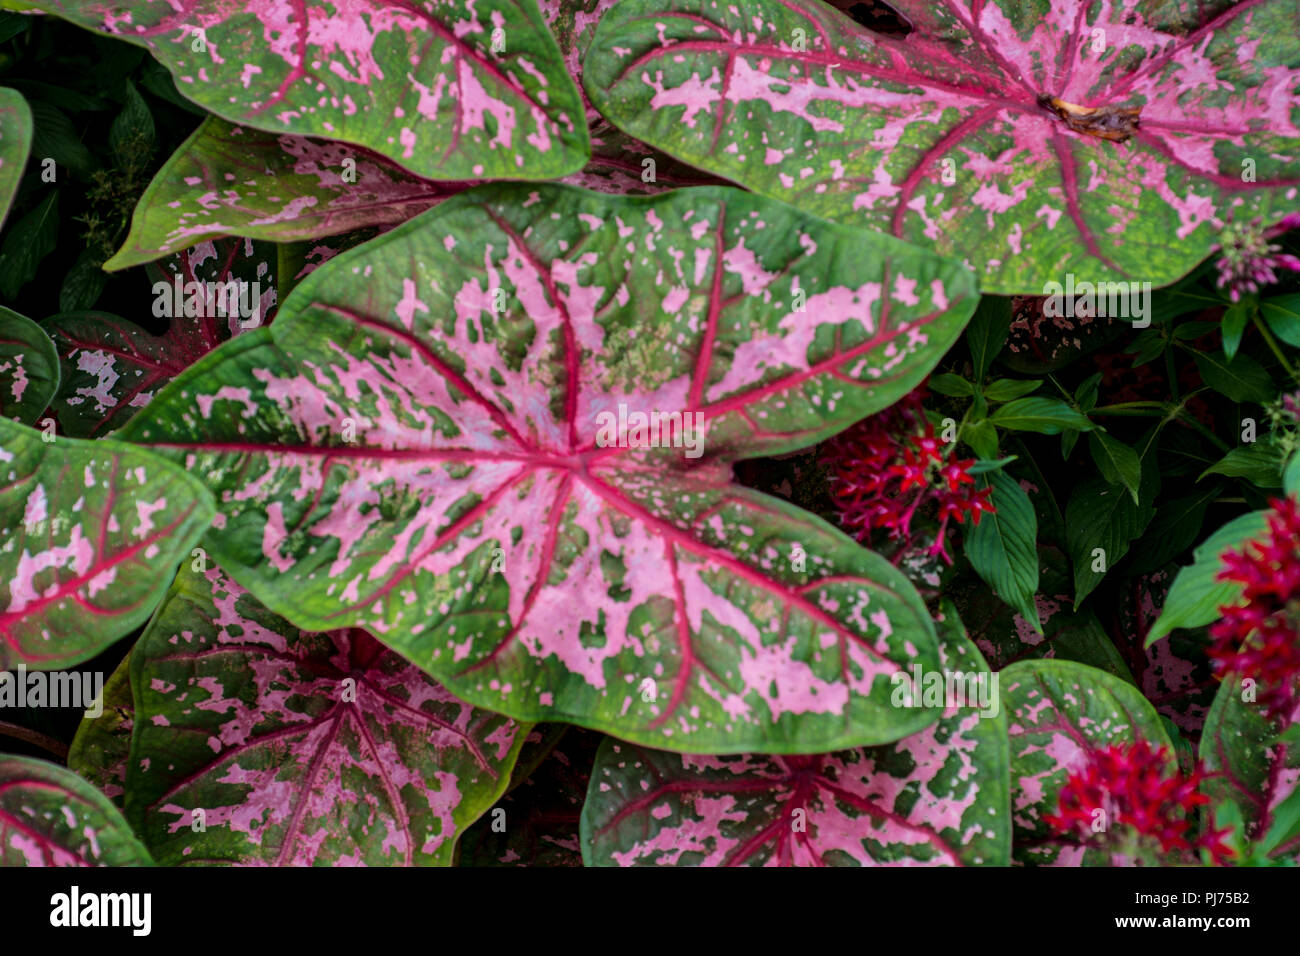 Elephant Ear Plants High Resolution Stock Photography And Images Alamy